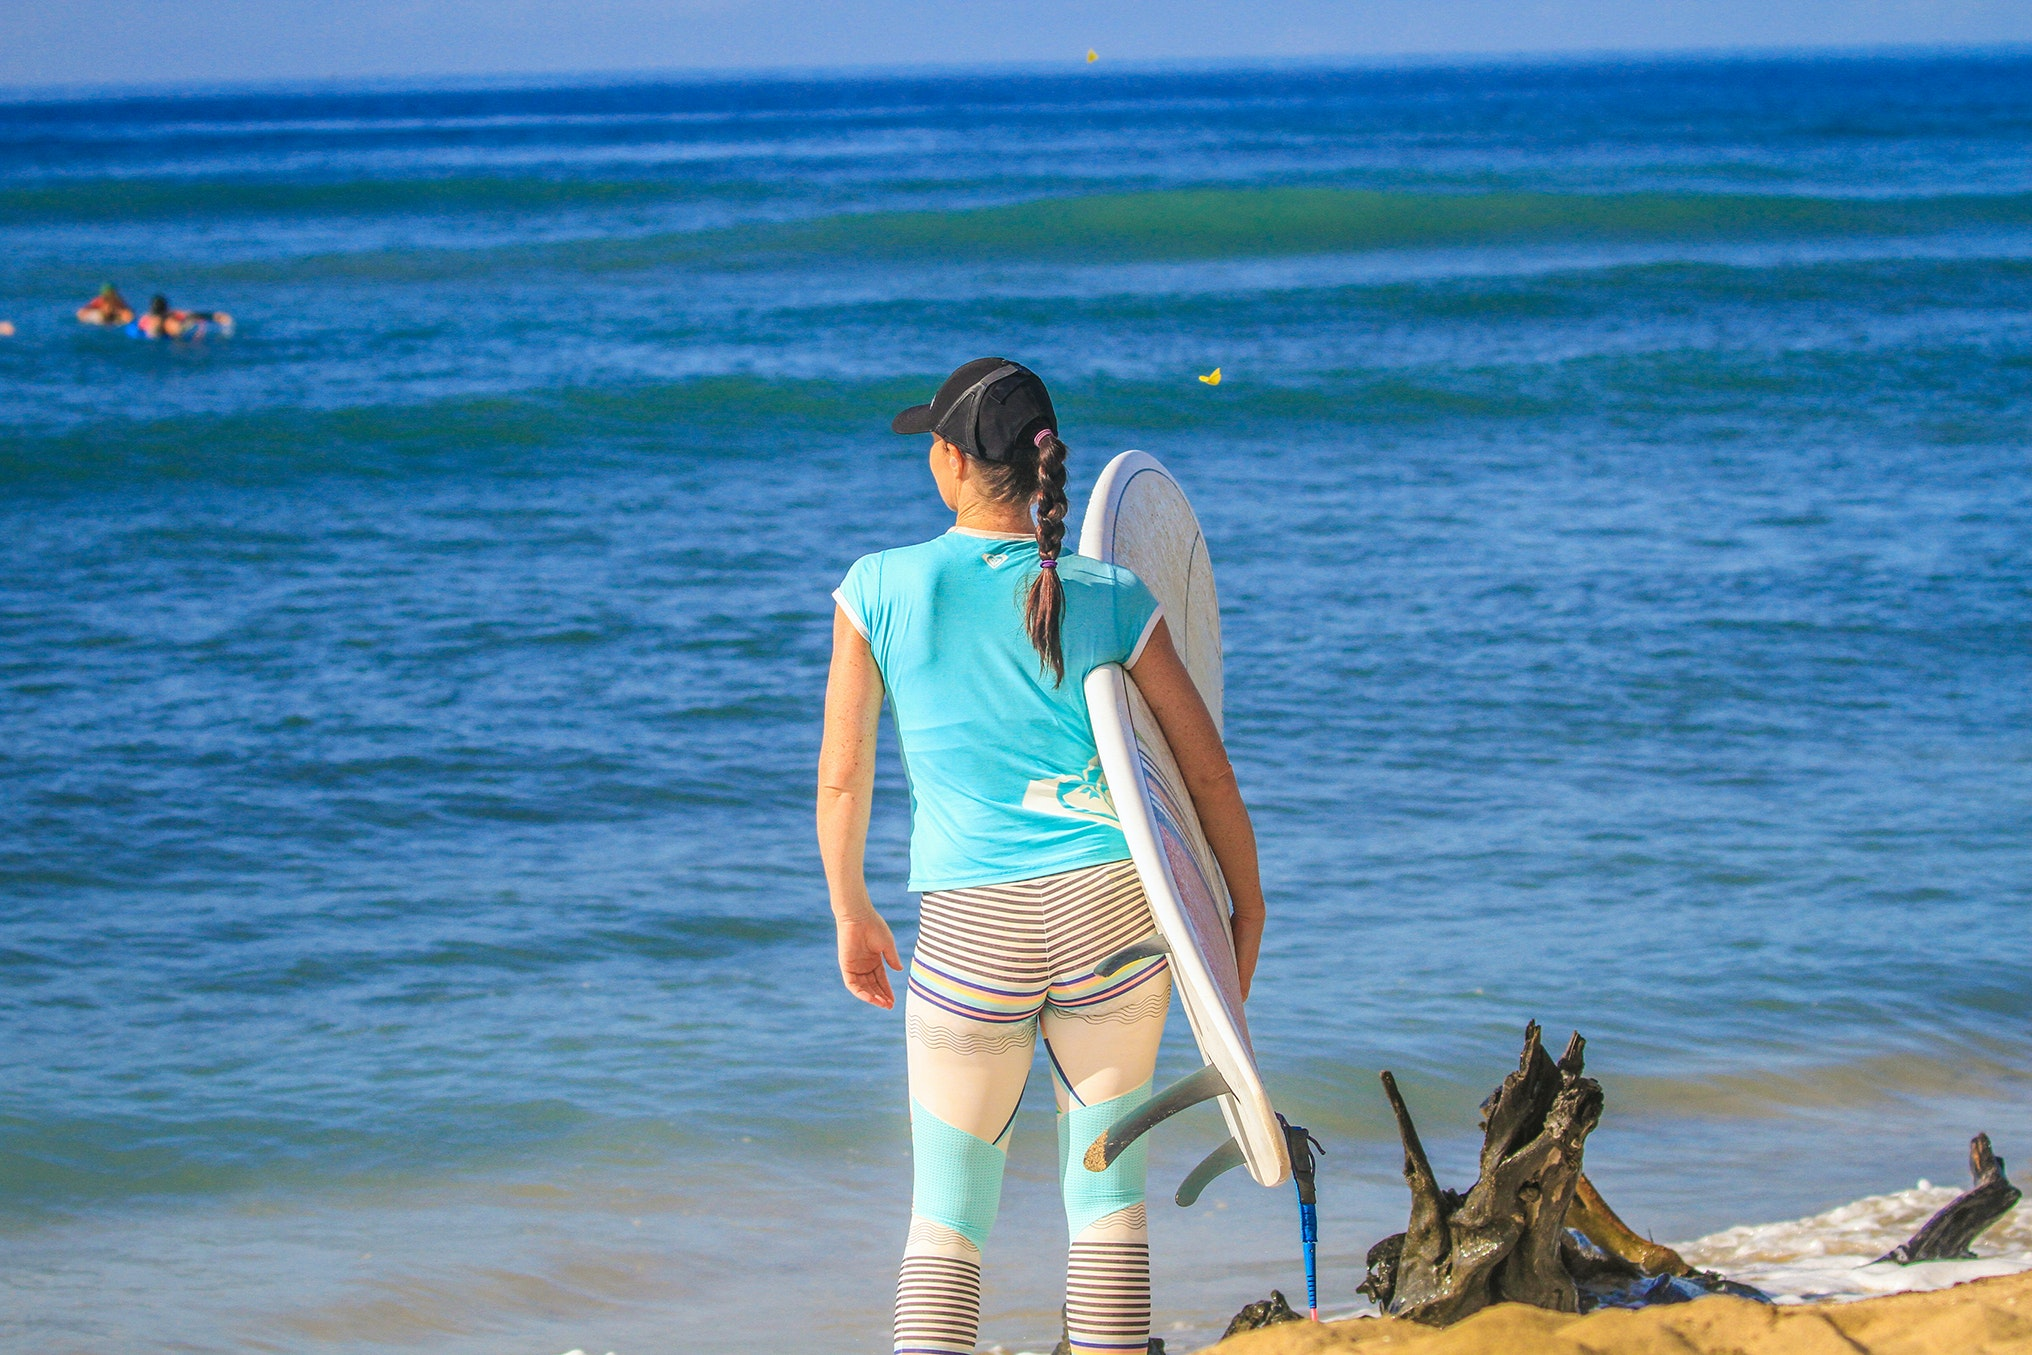 Maui Surfer Girls is owned and run by women.